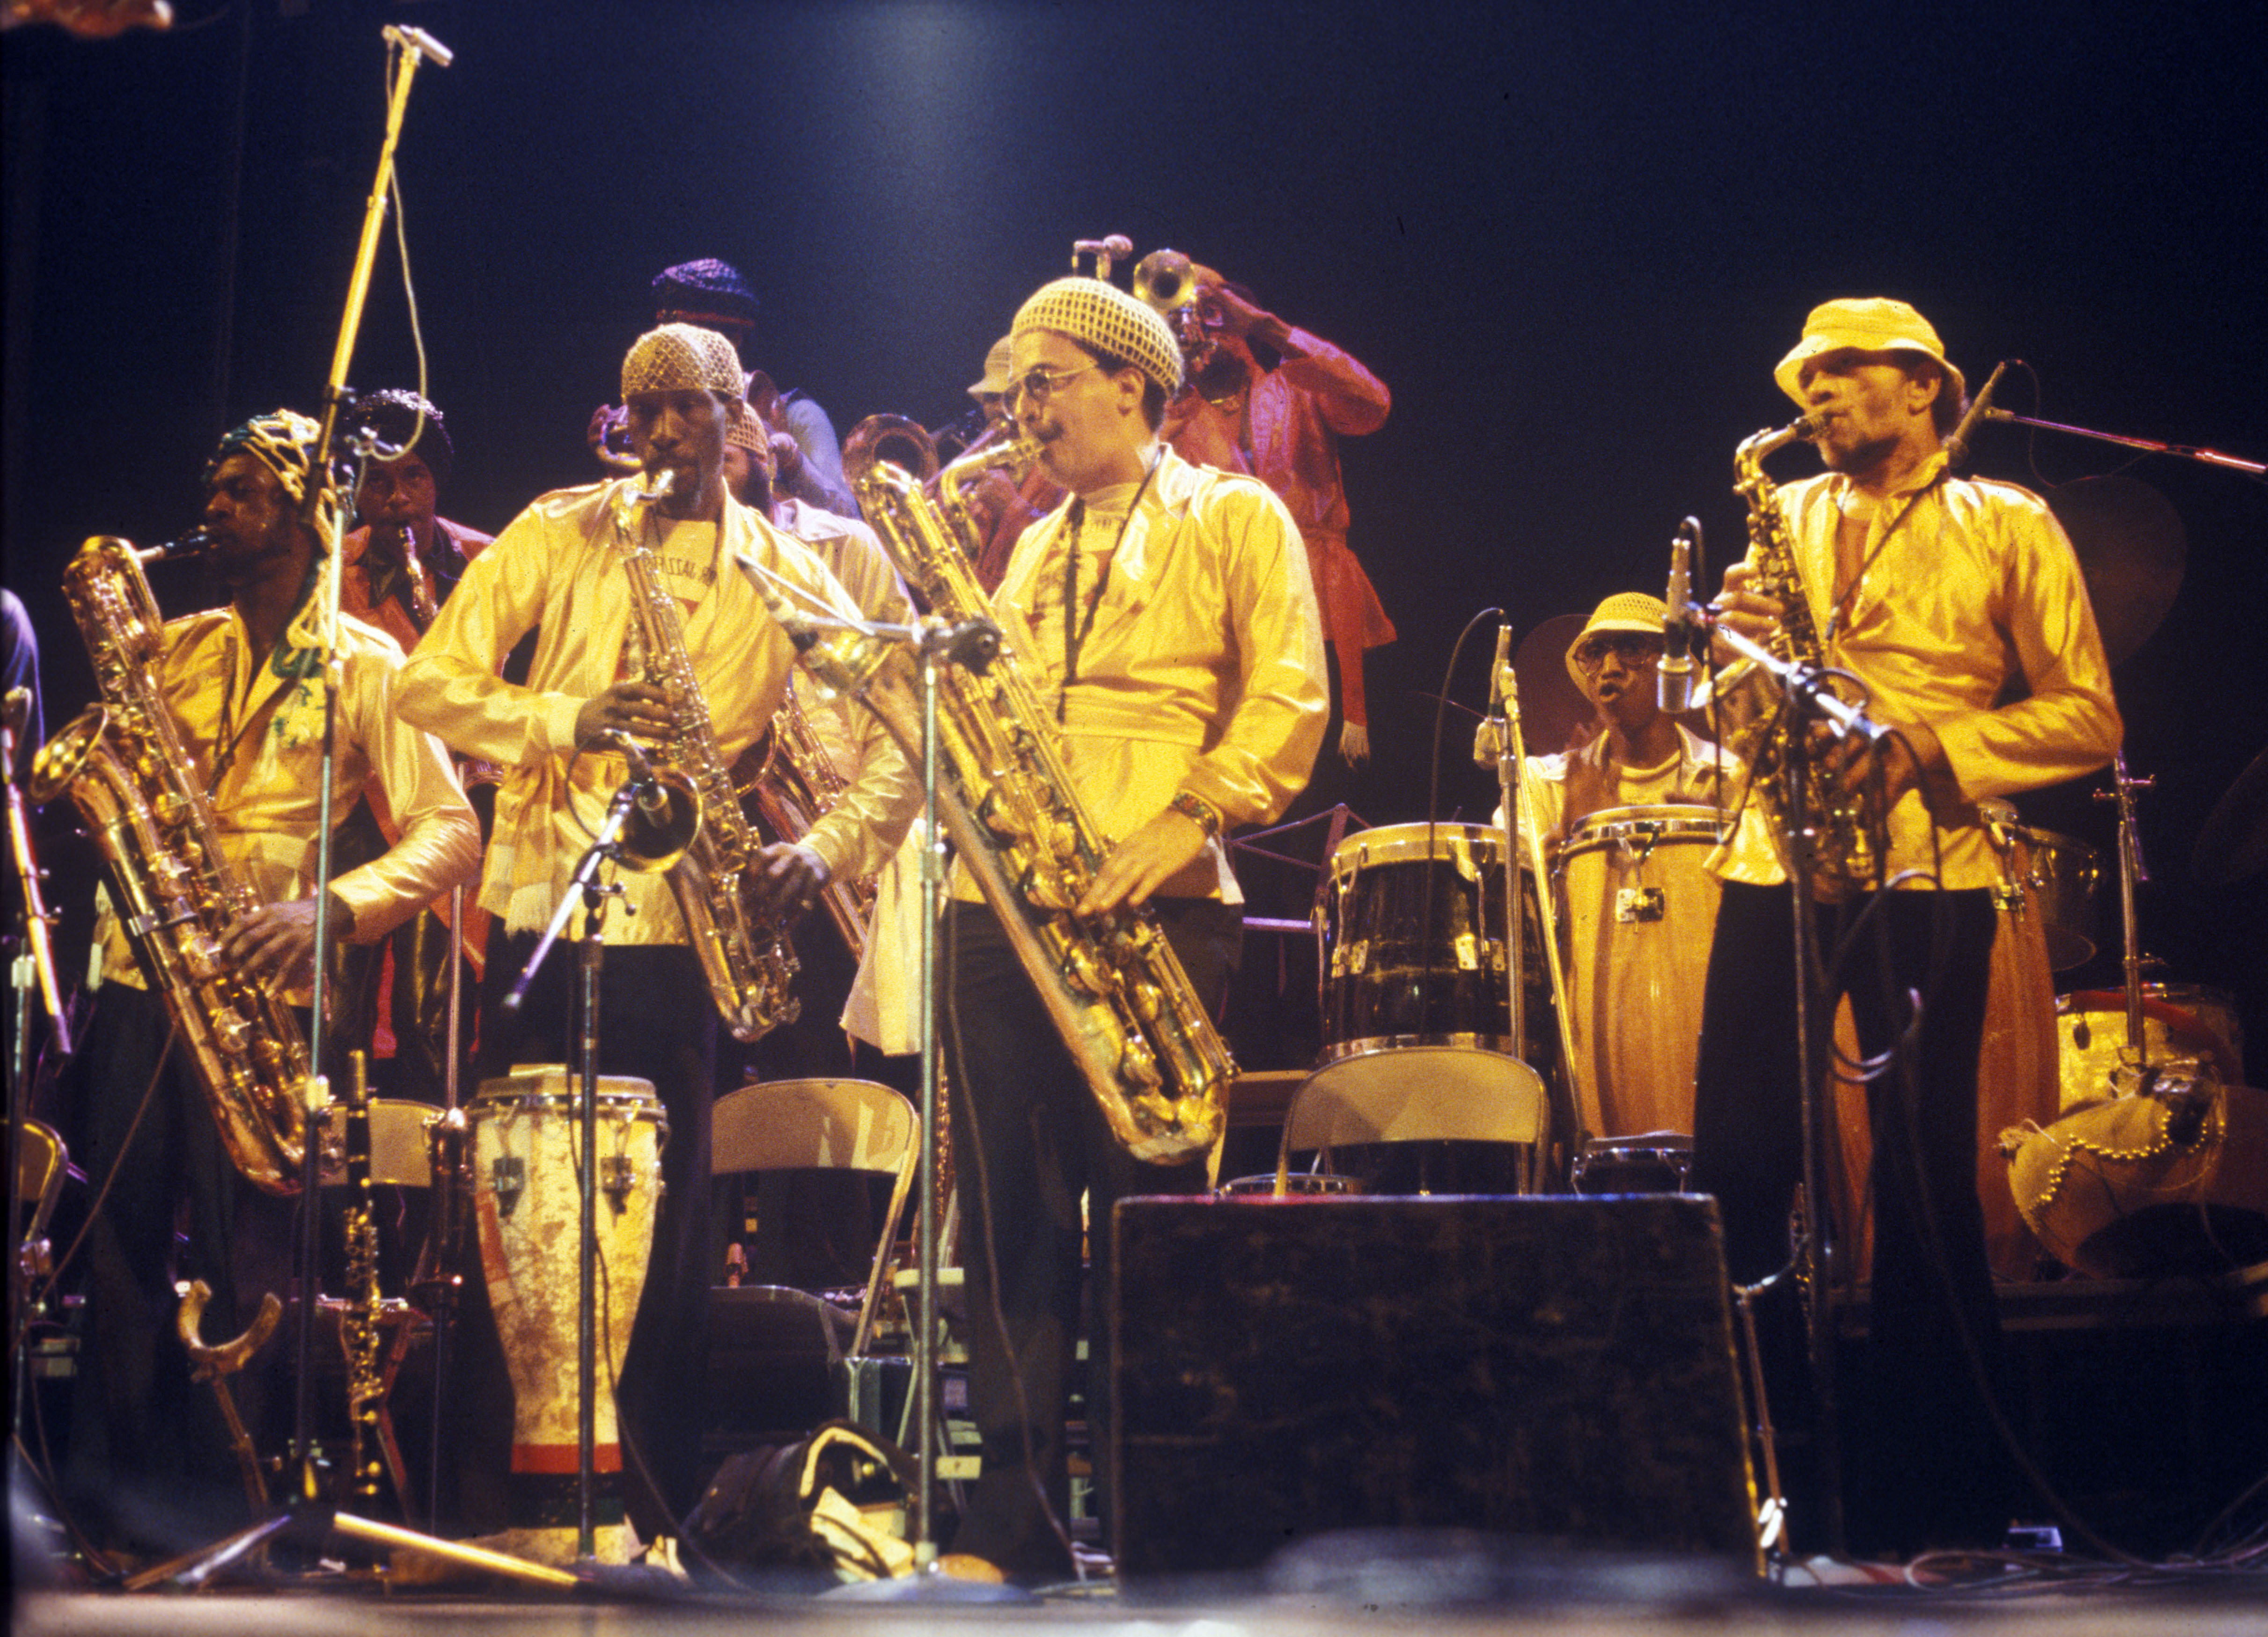 Sun Ra with The Sun Ra Arkestra at Hill Auditorium, September 28, 1979 image